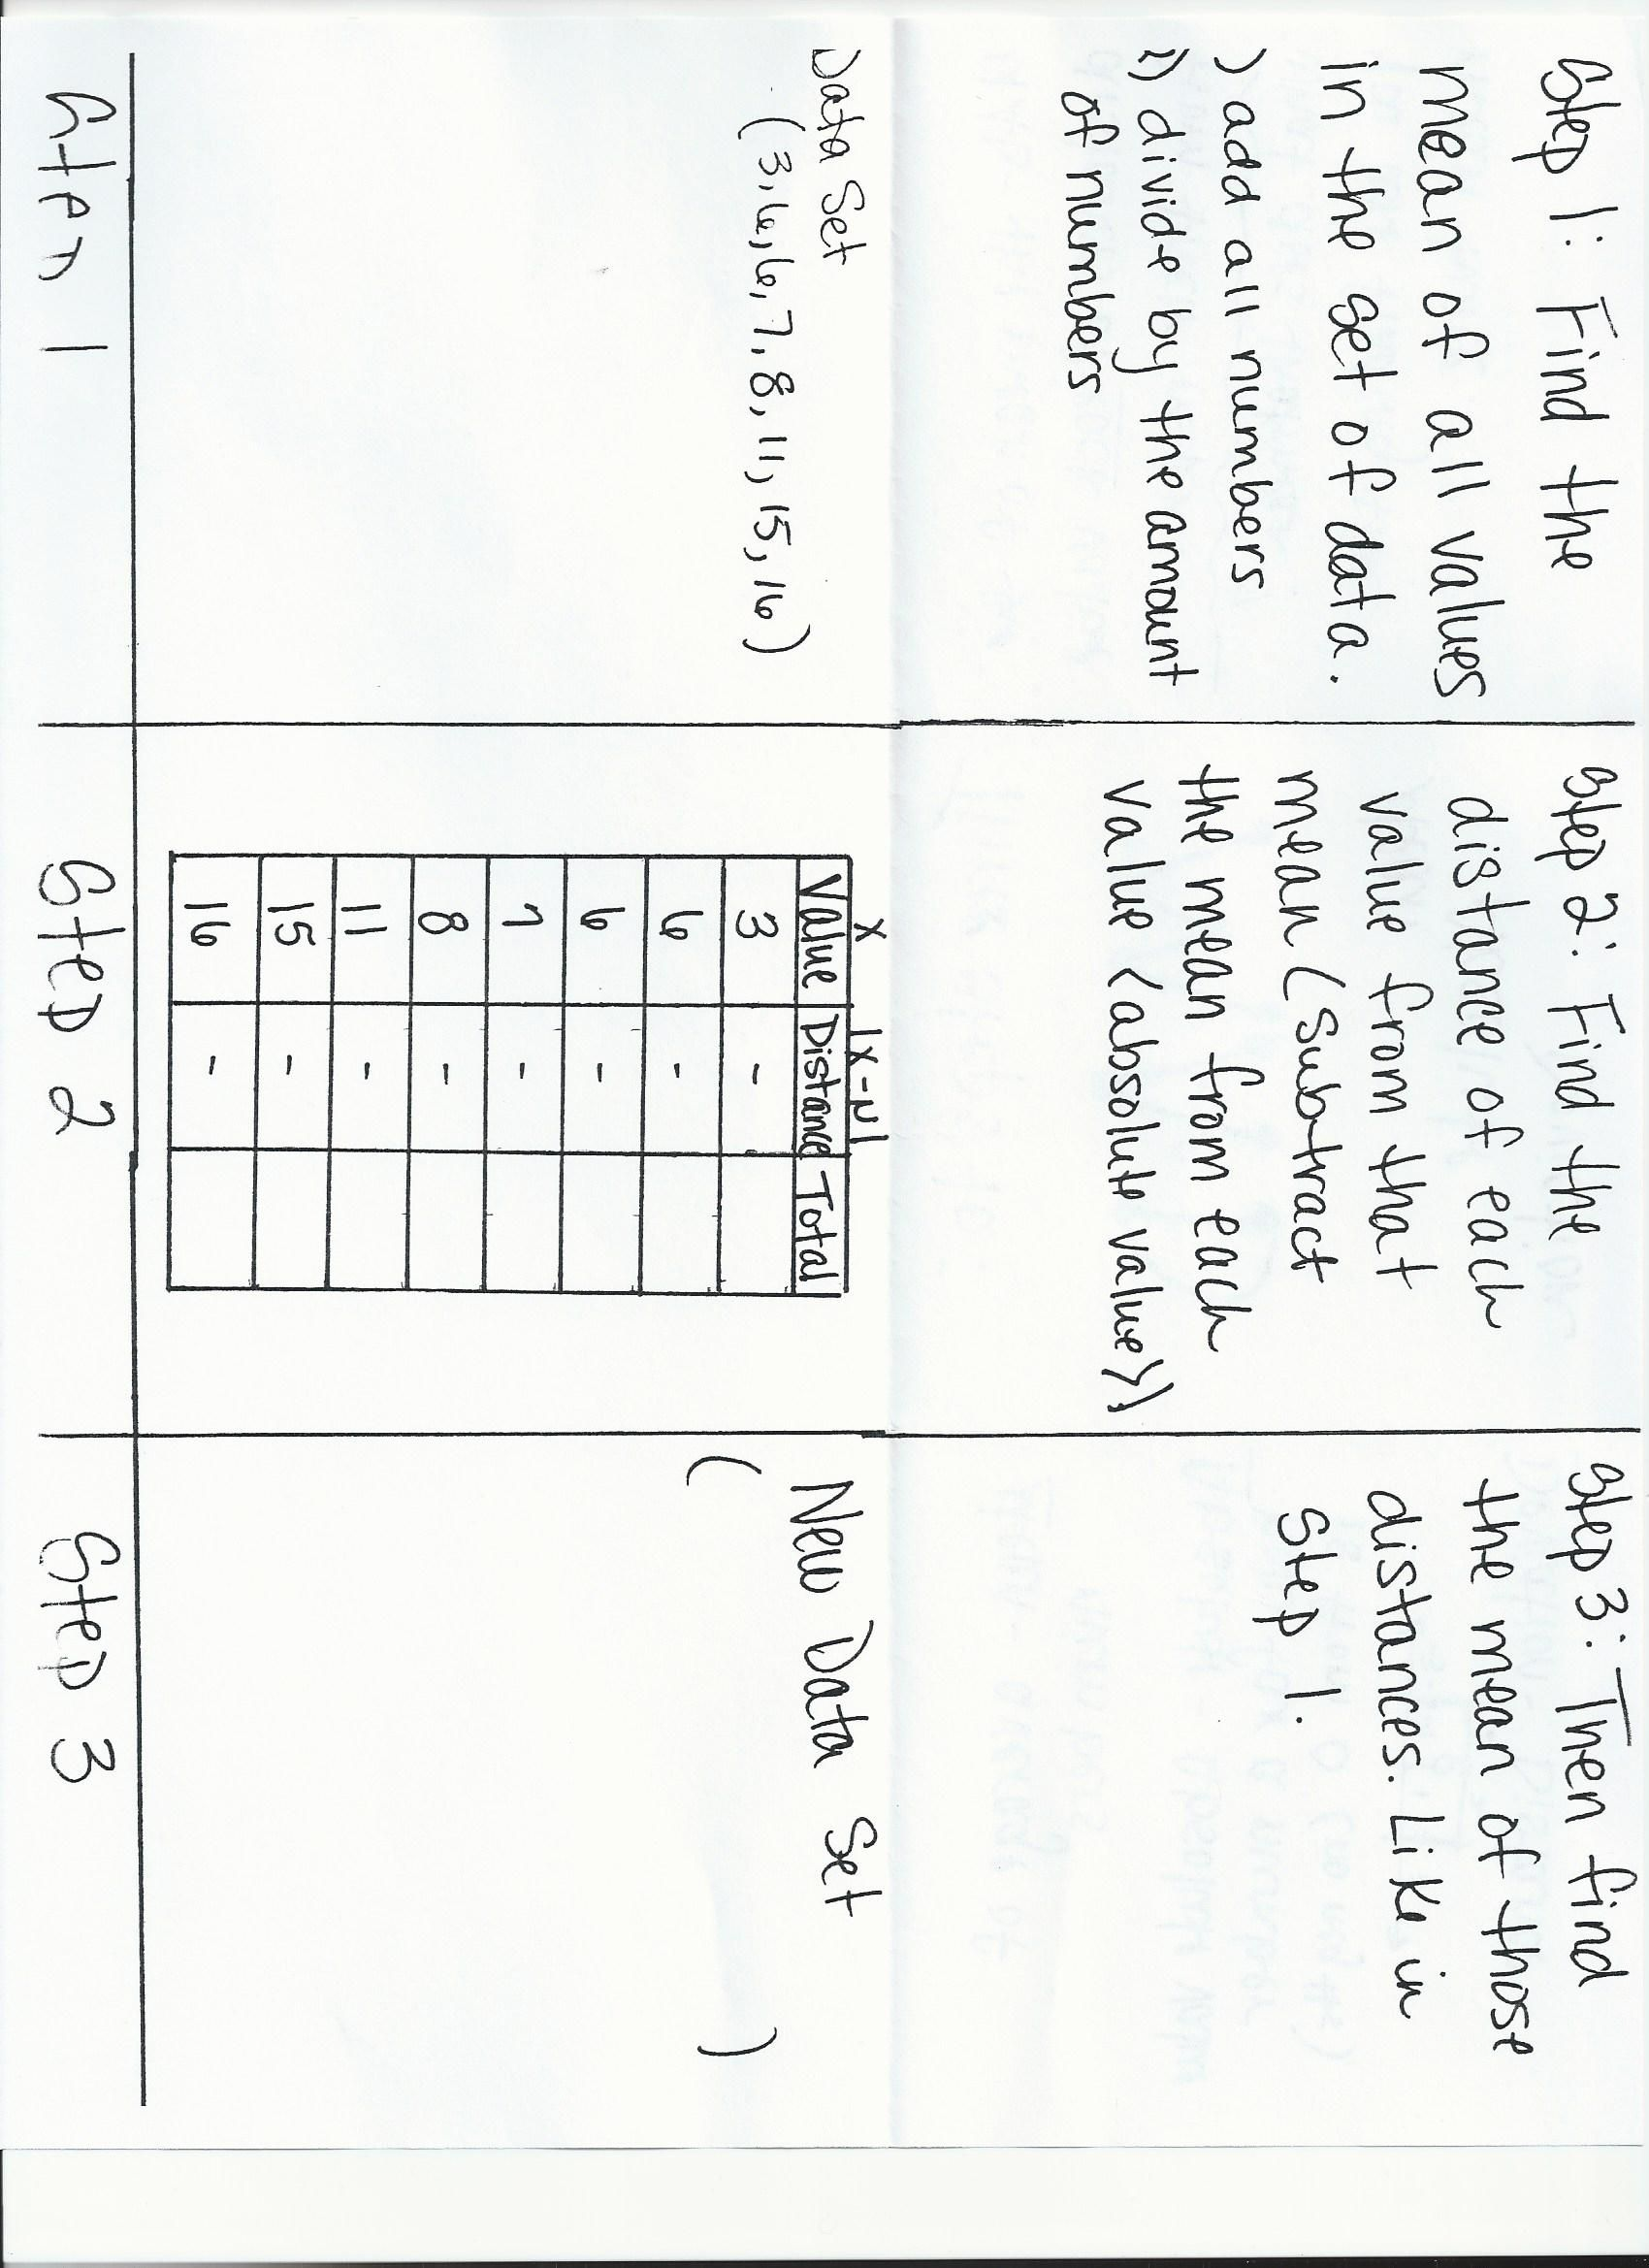 Standard Deviation Worksheet 6th Grade